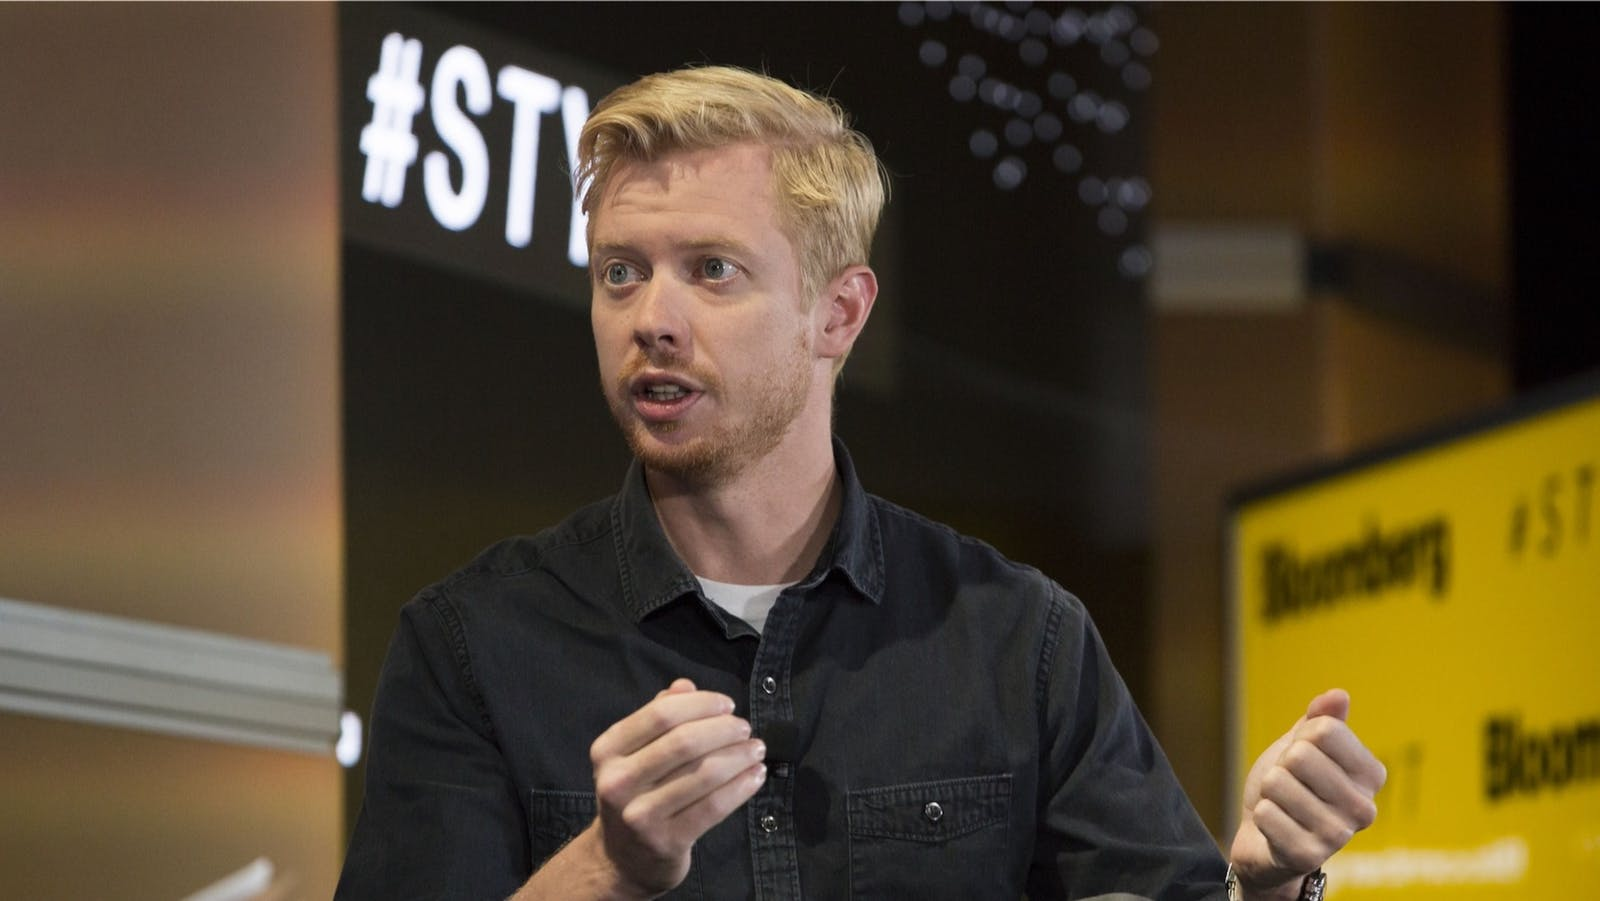 Steve Huffman, chief executive officer and co-founder of Reddit Inc., in 2018. Photo: Bloomberg